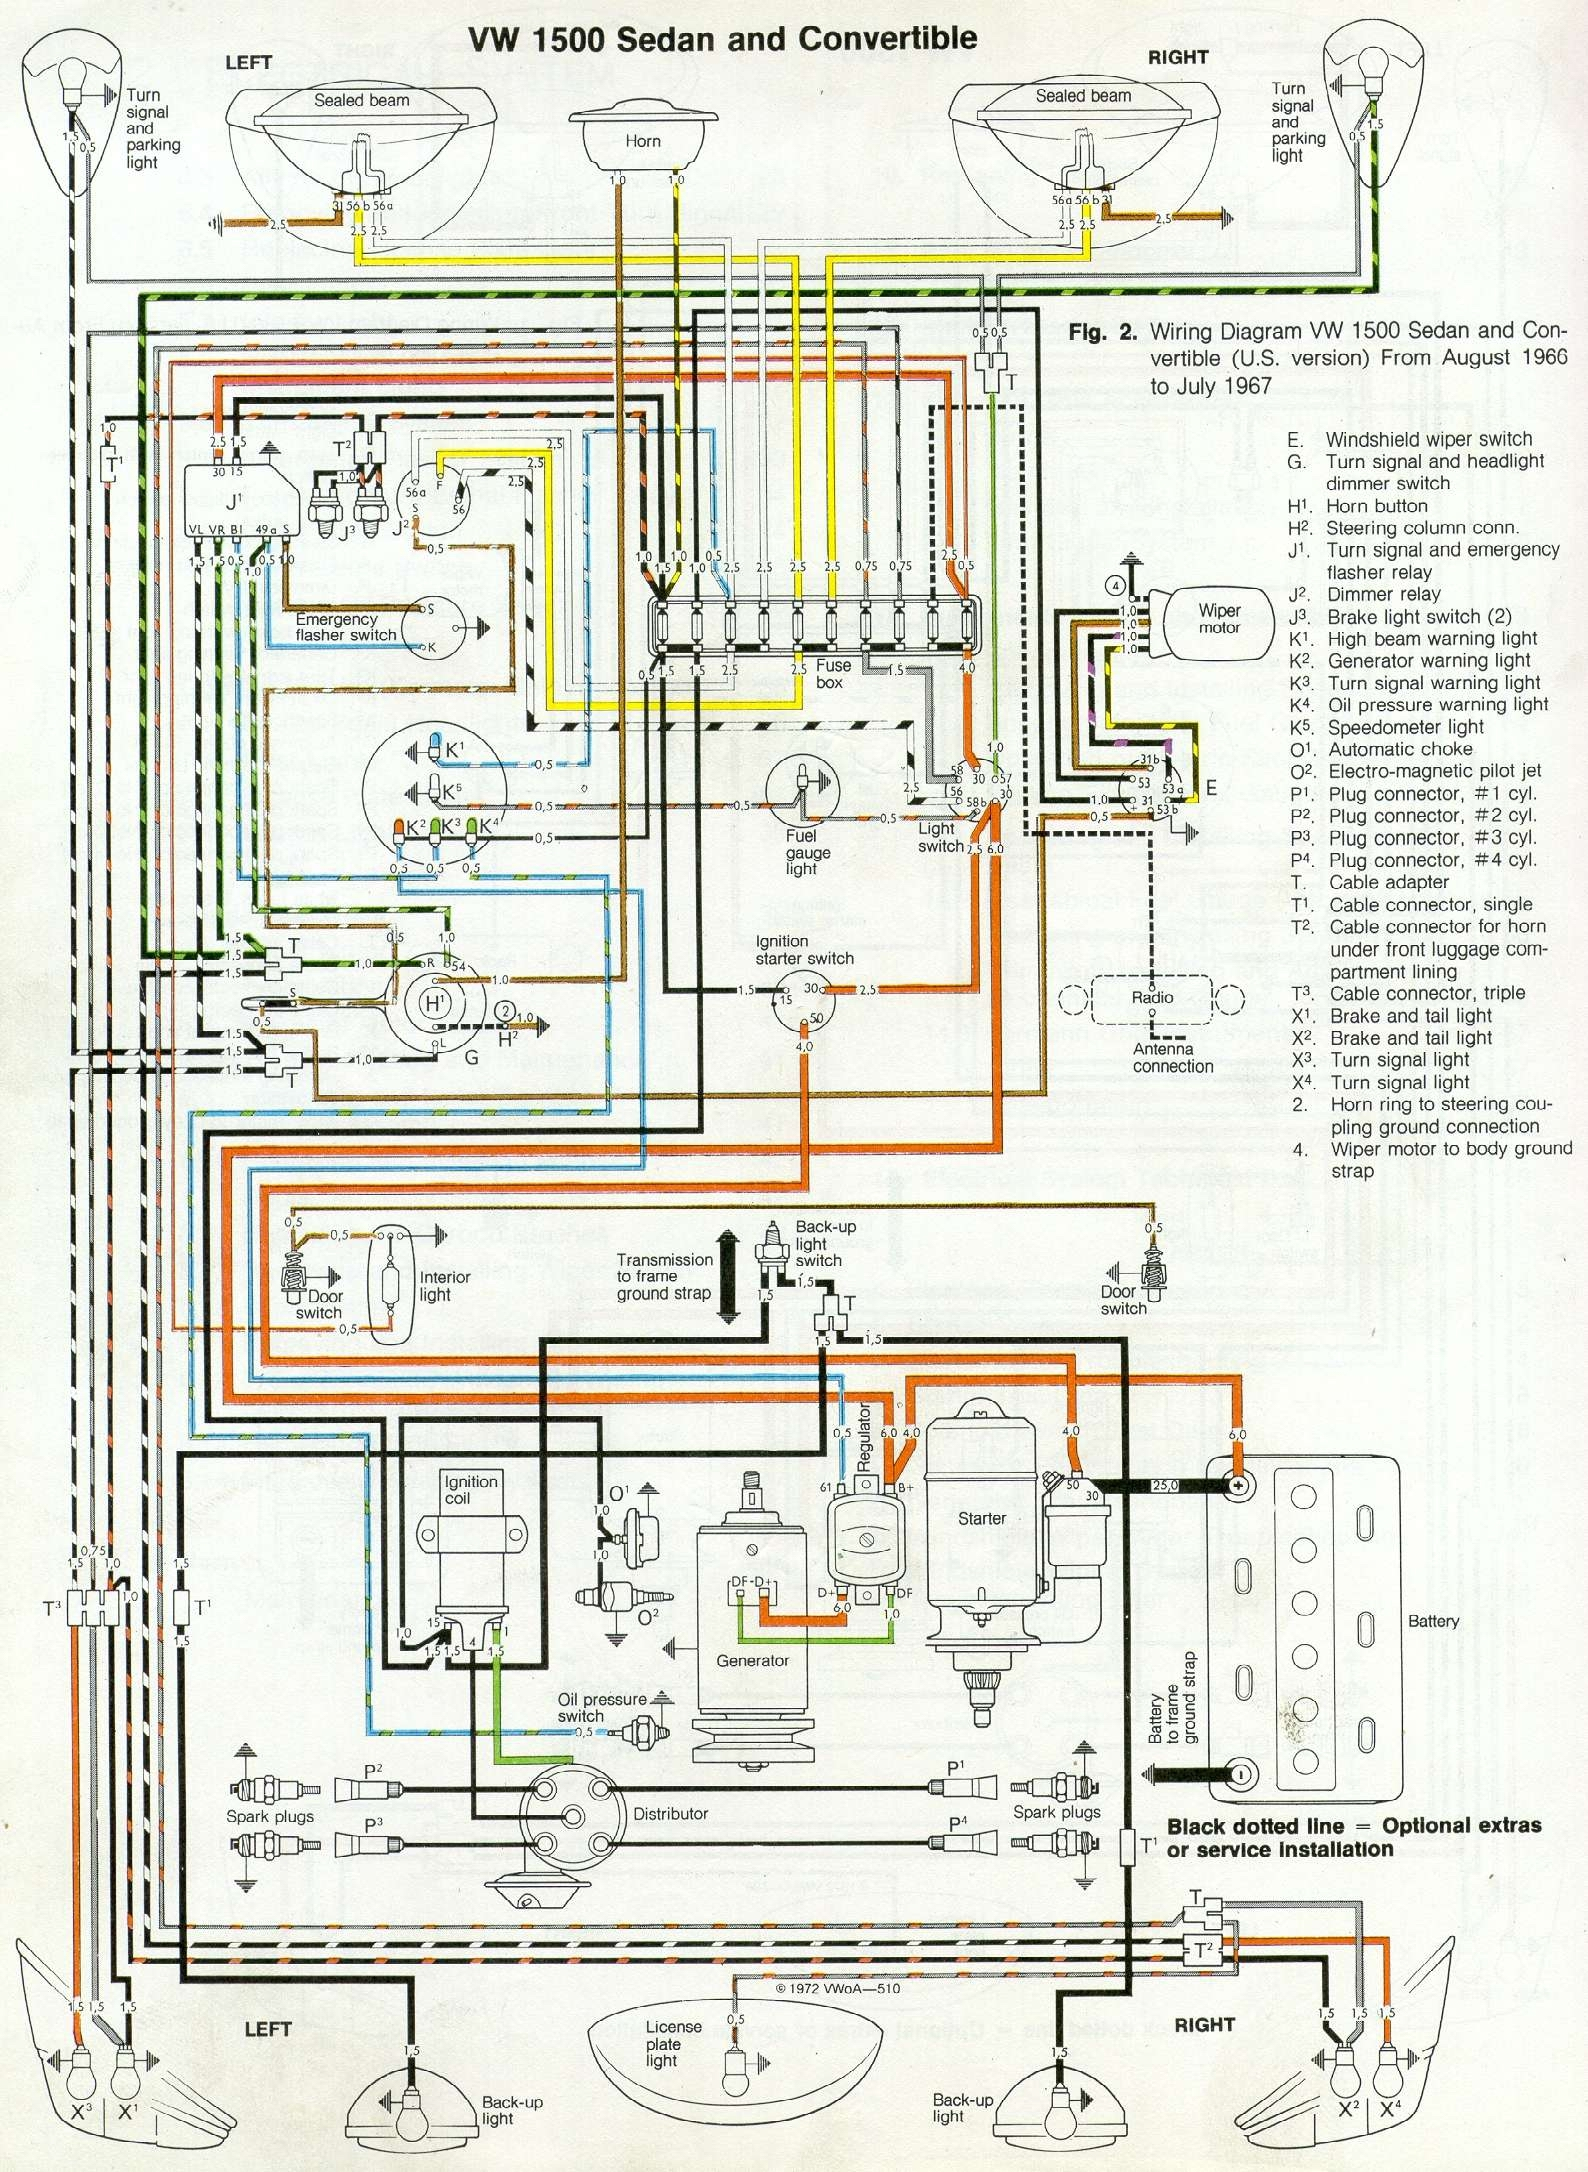 VW Beetle Wiring Digram?fit=1100%2C1505 66 and '67 vw beetle wiring diagram 1967 vw beetle